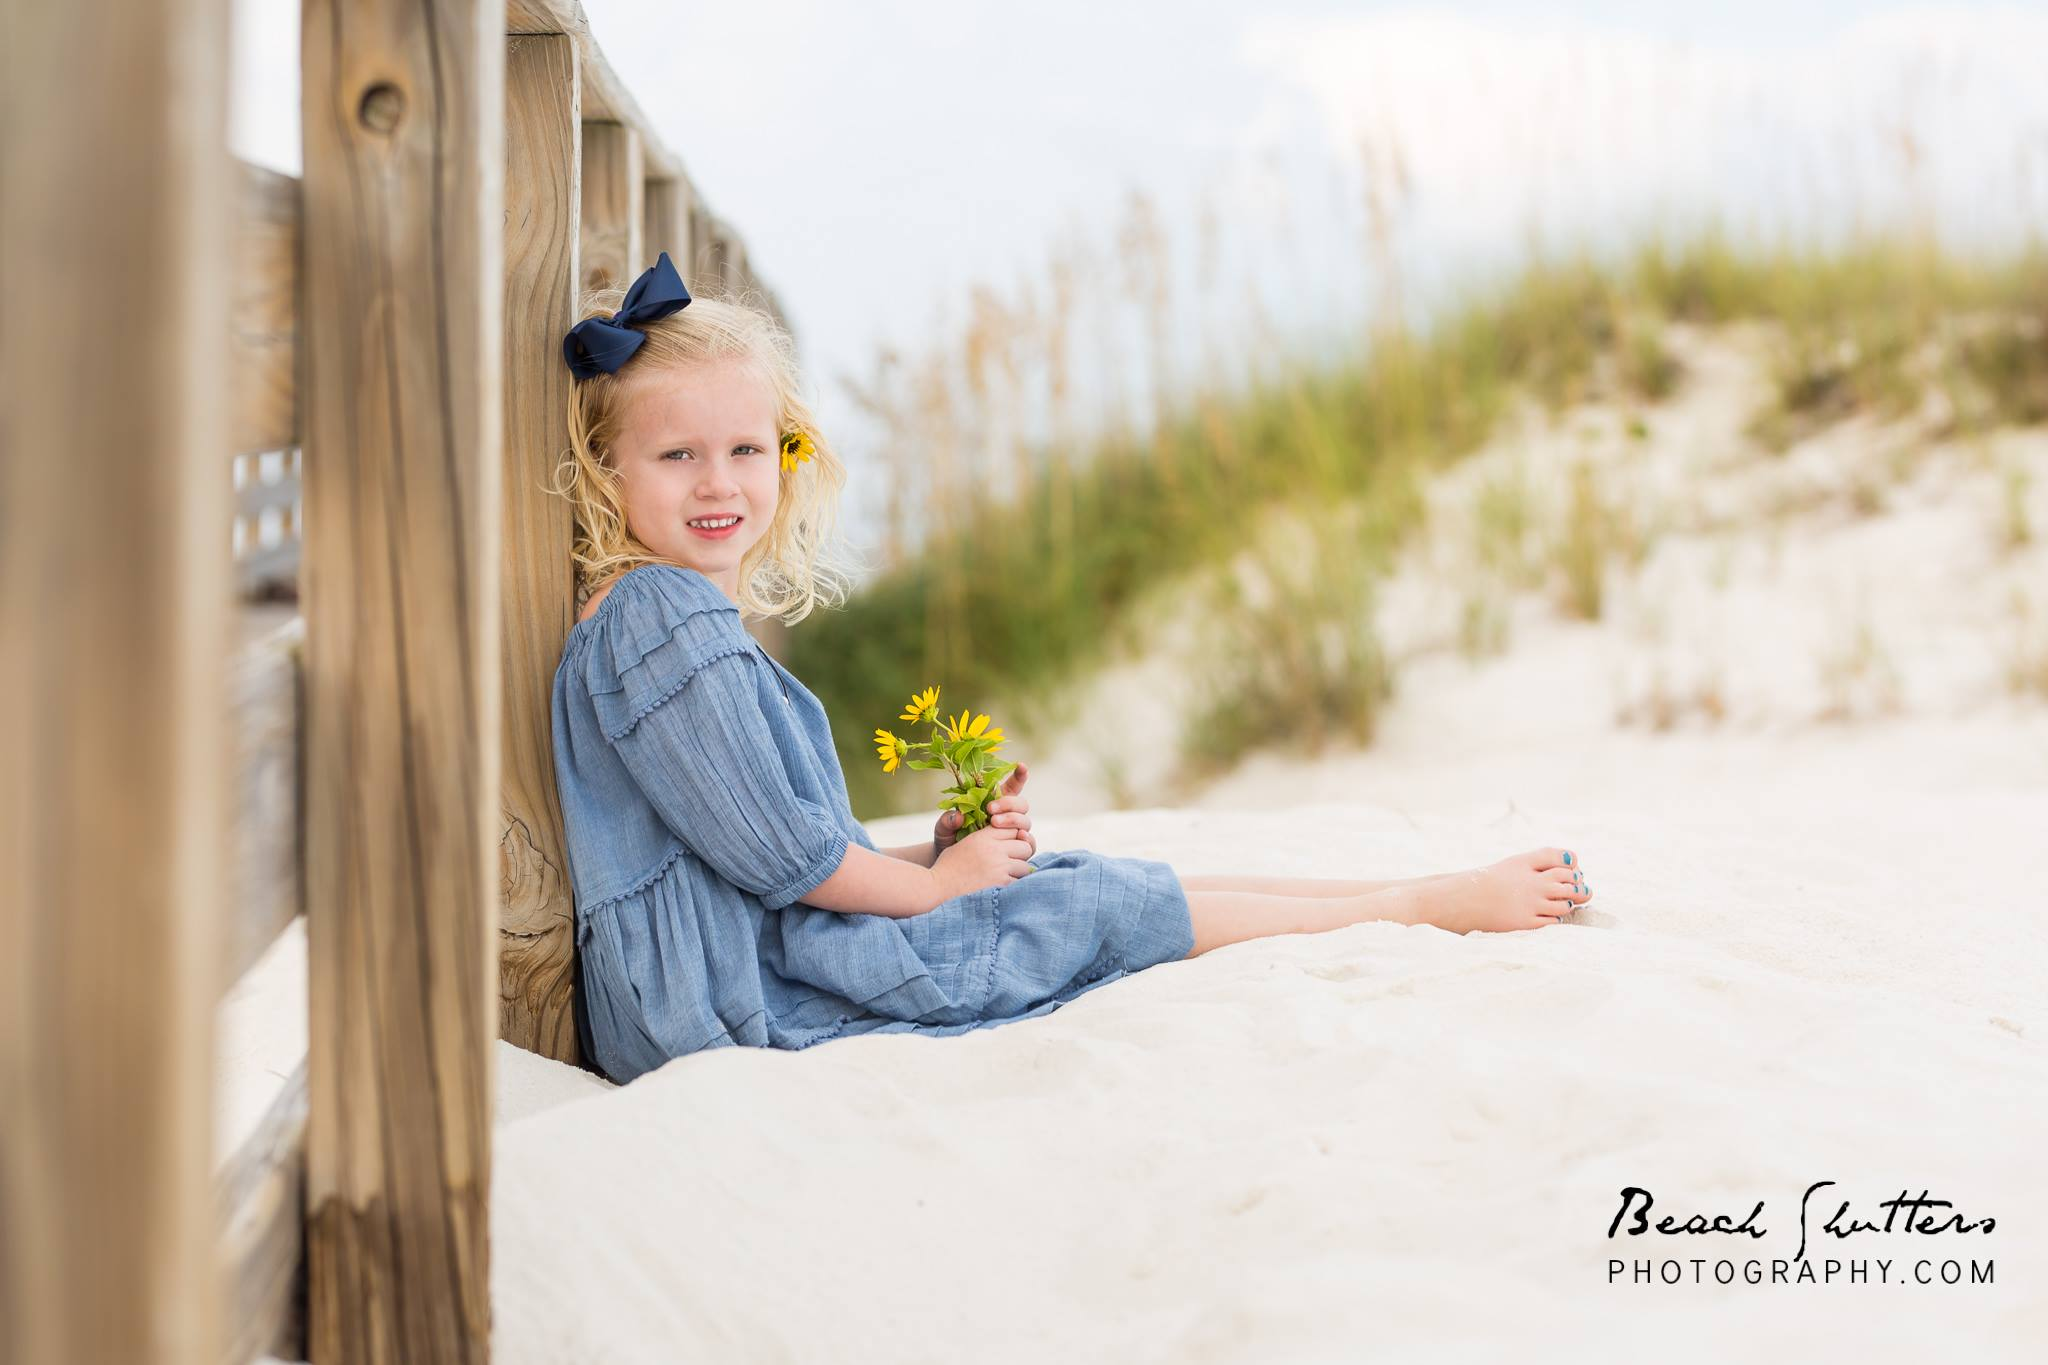 photographer in Orange Beach Alabama takes children's photos